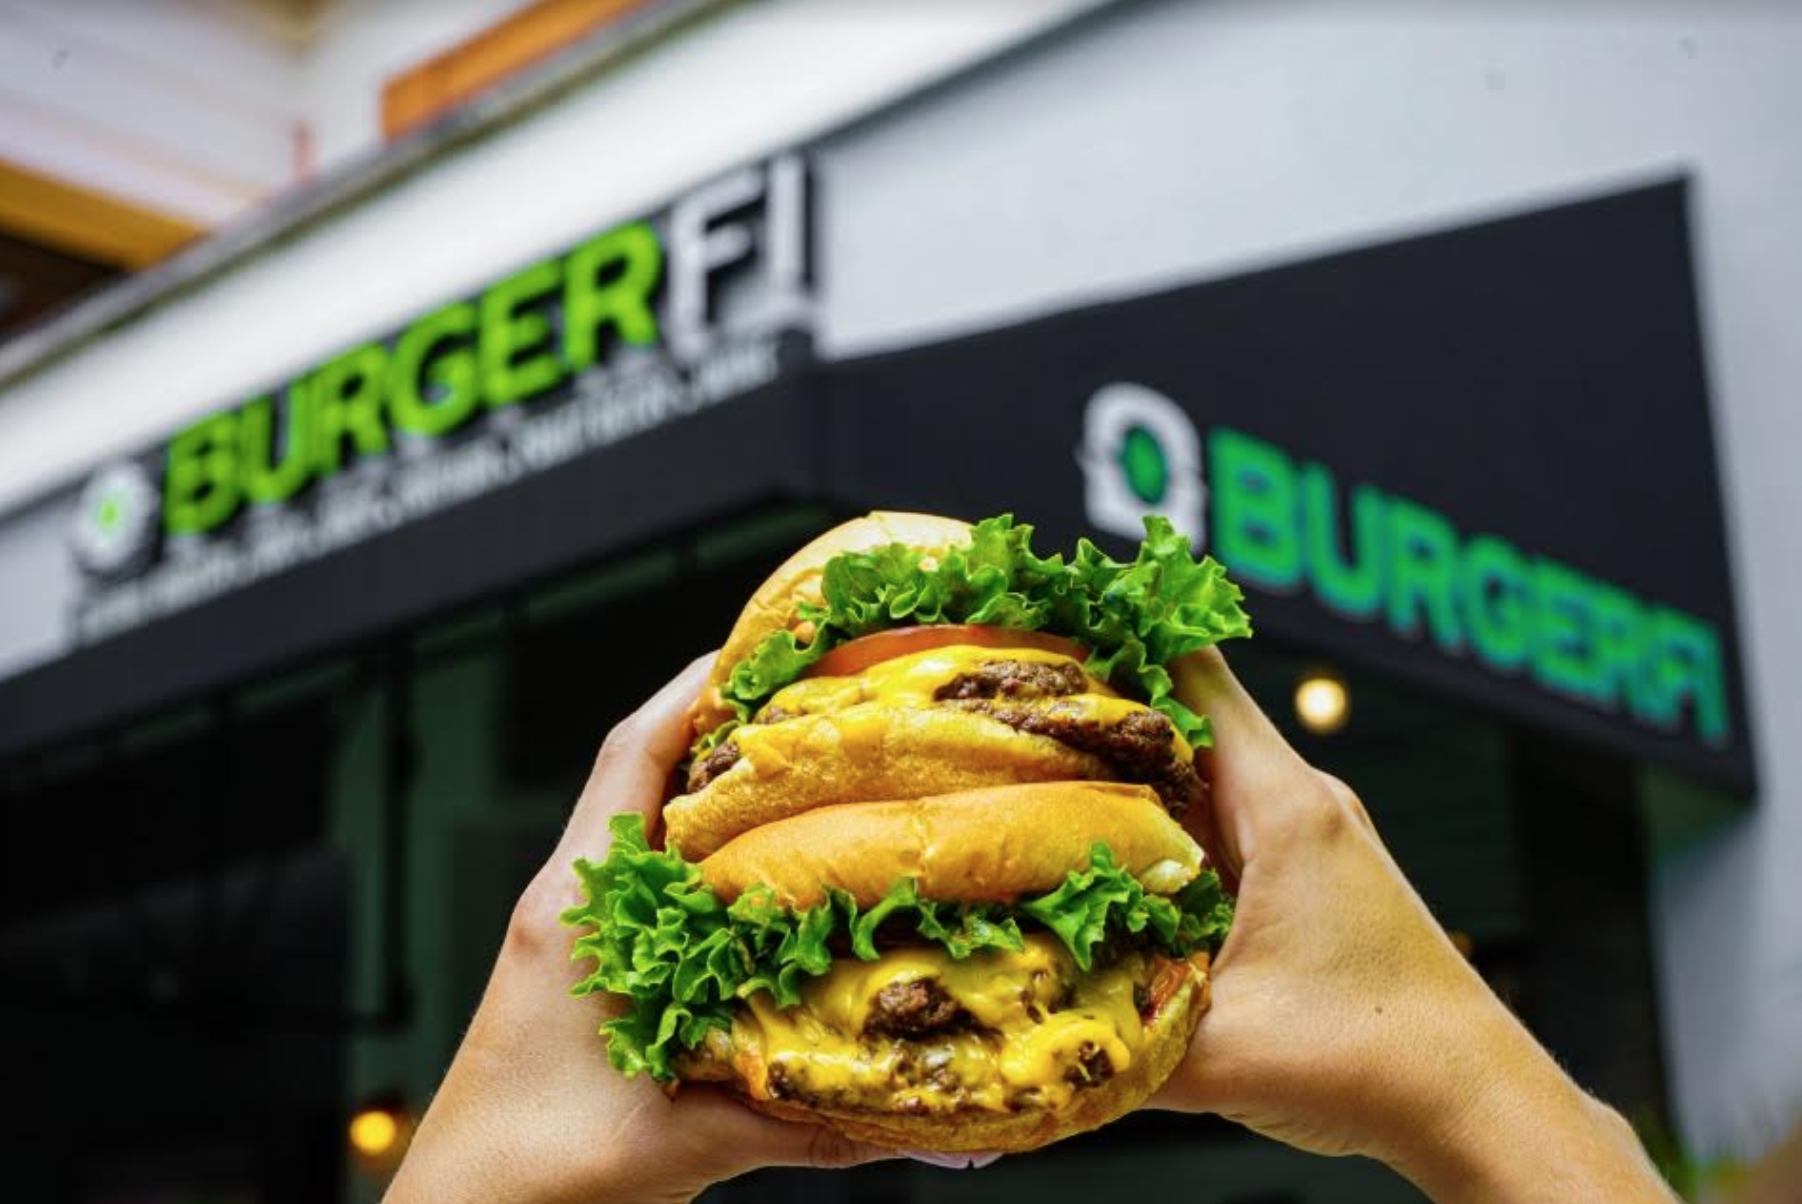 National Cheeseburger Day Deals: image of BurgerFi cheeseburger